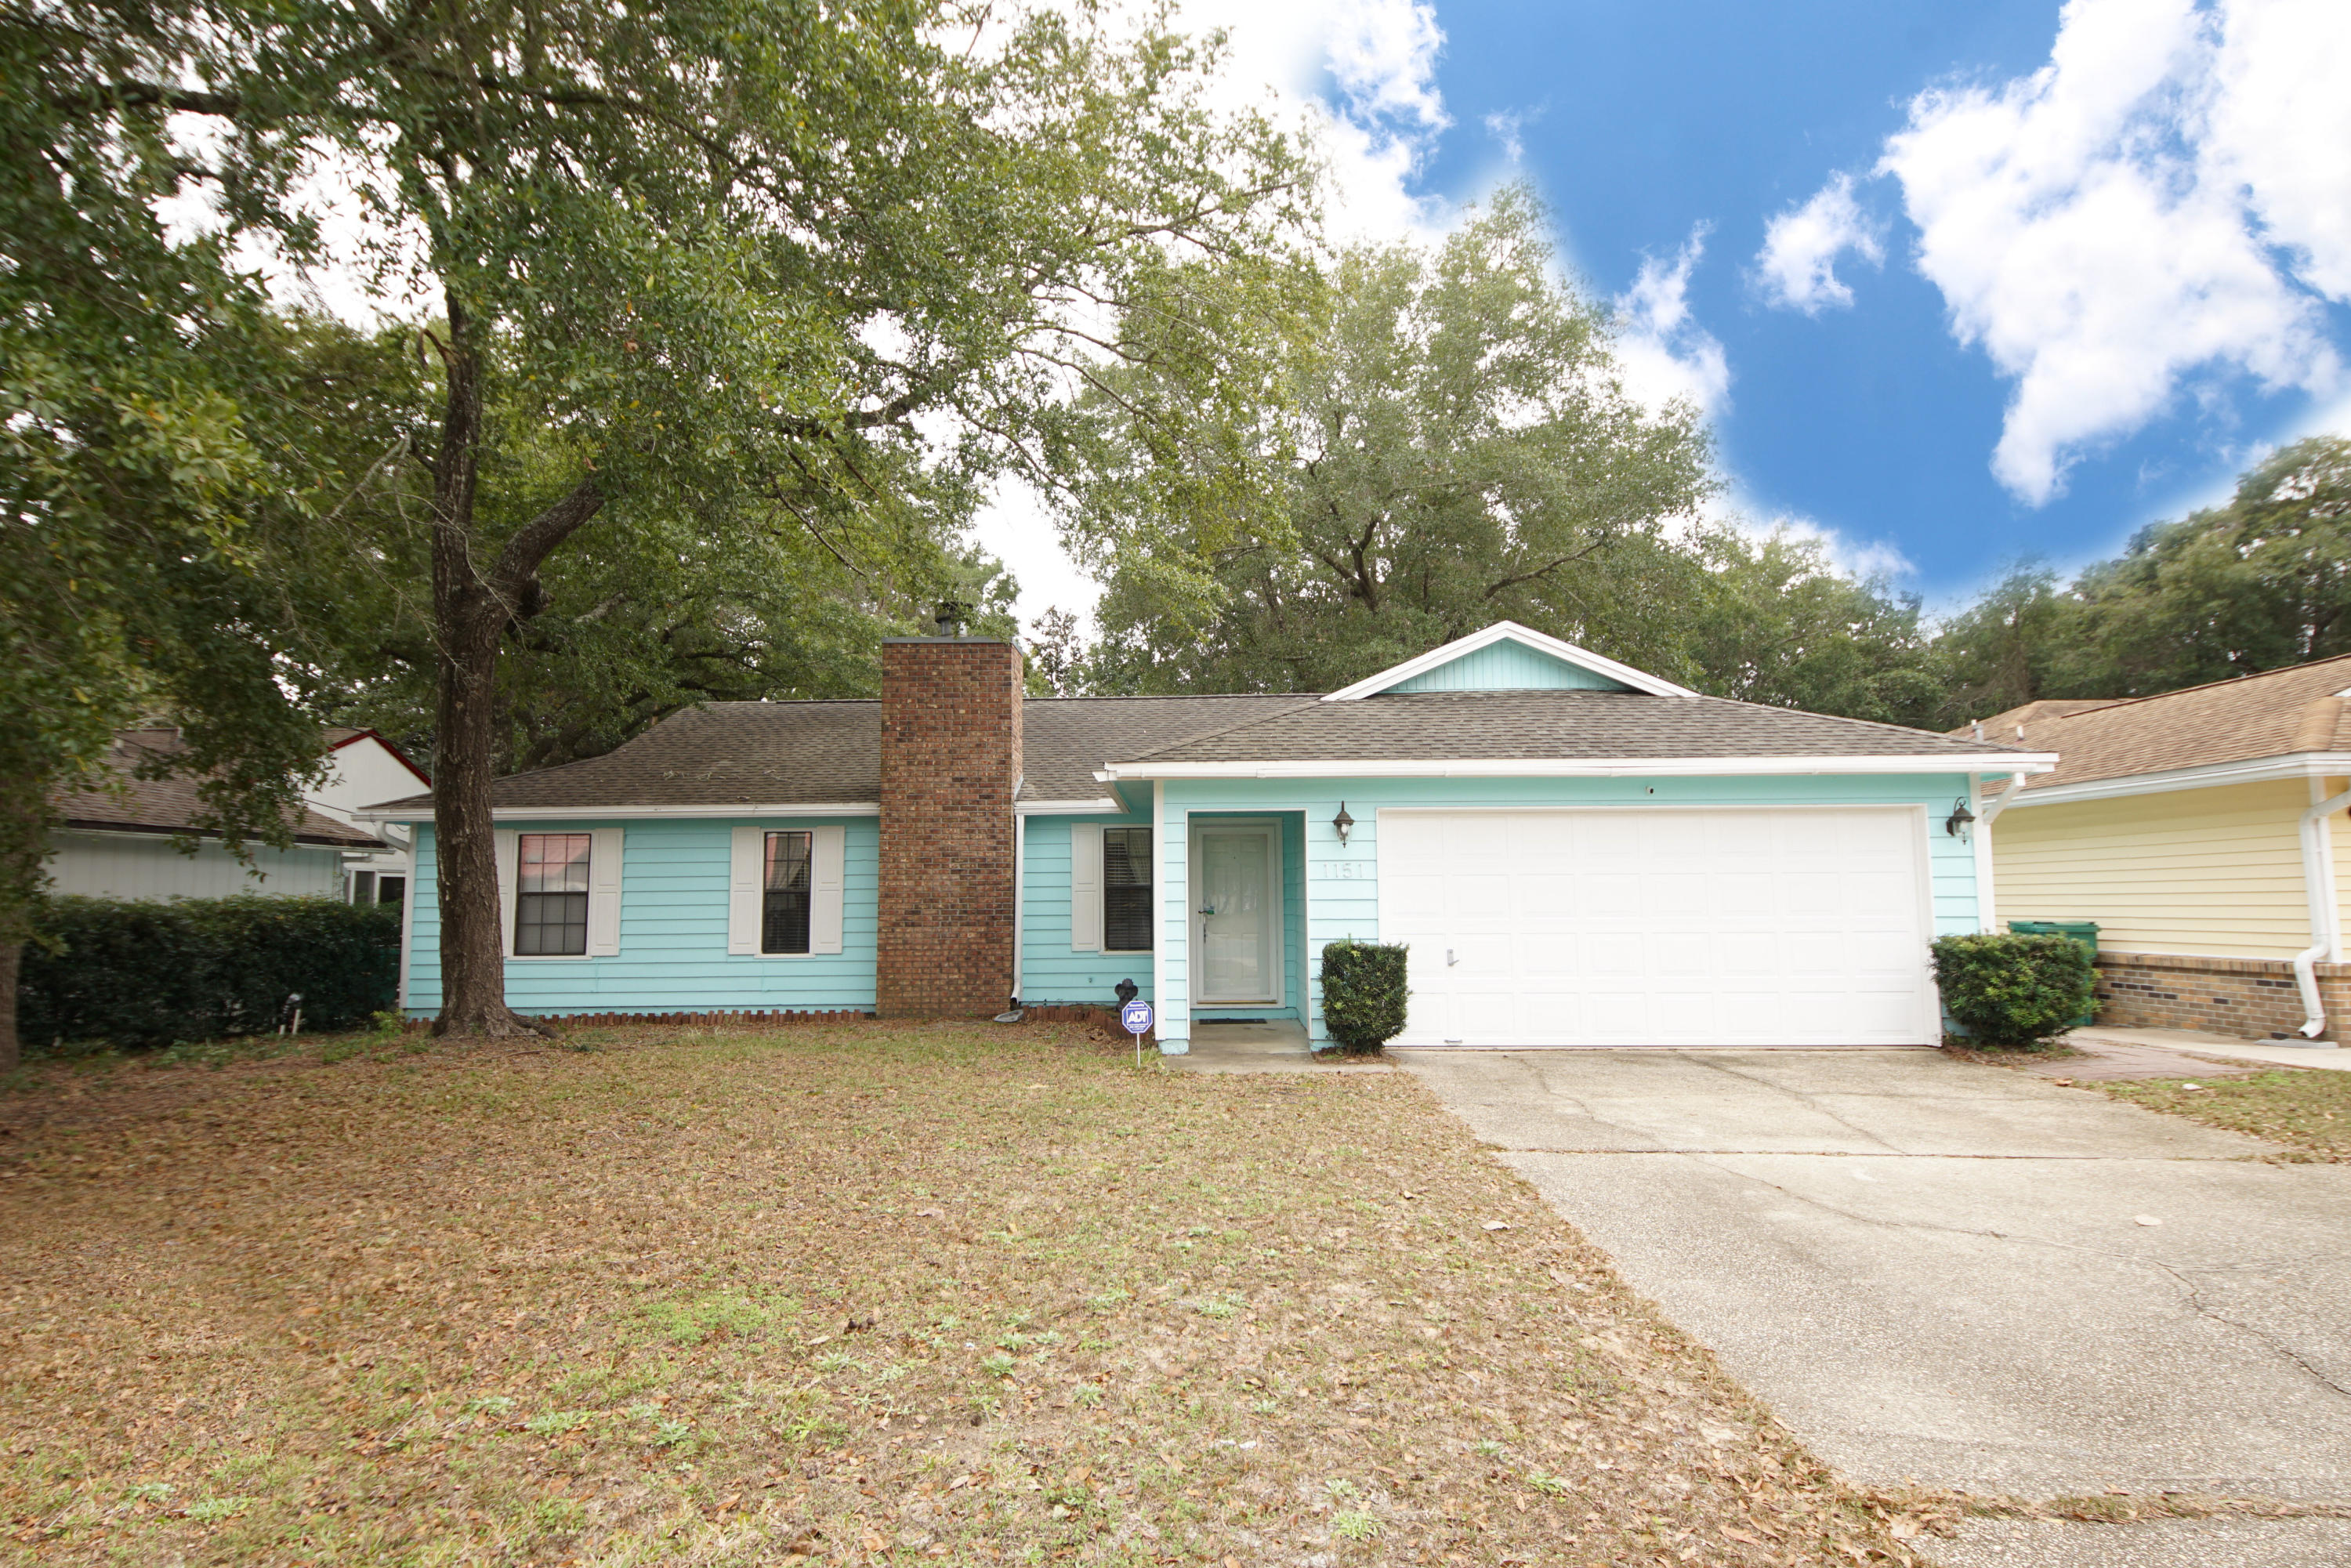 Photo of home for sale at 1151 Rhonda, Niceville FL